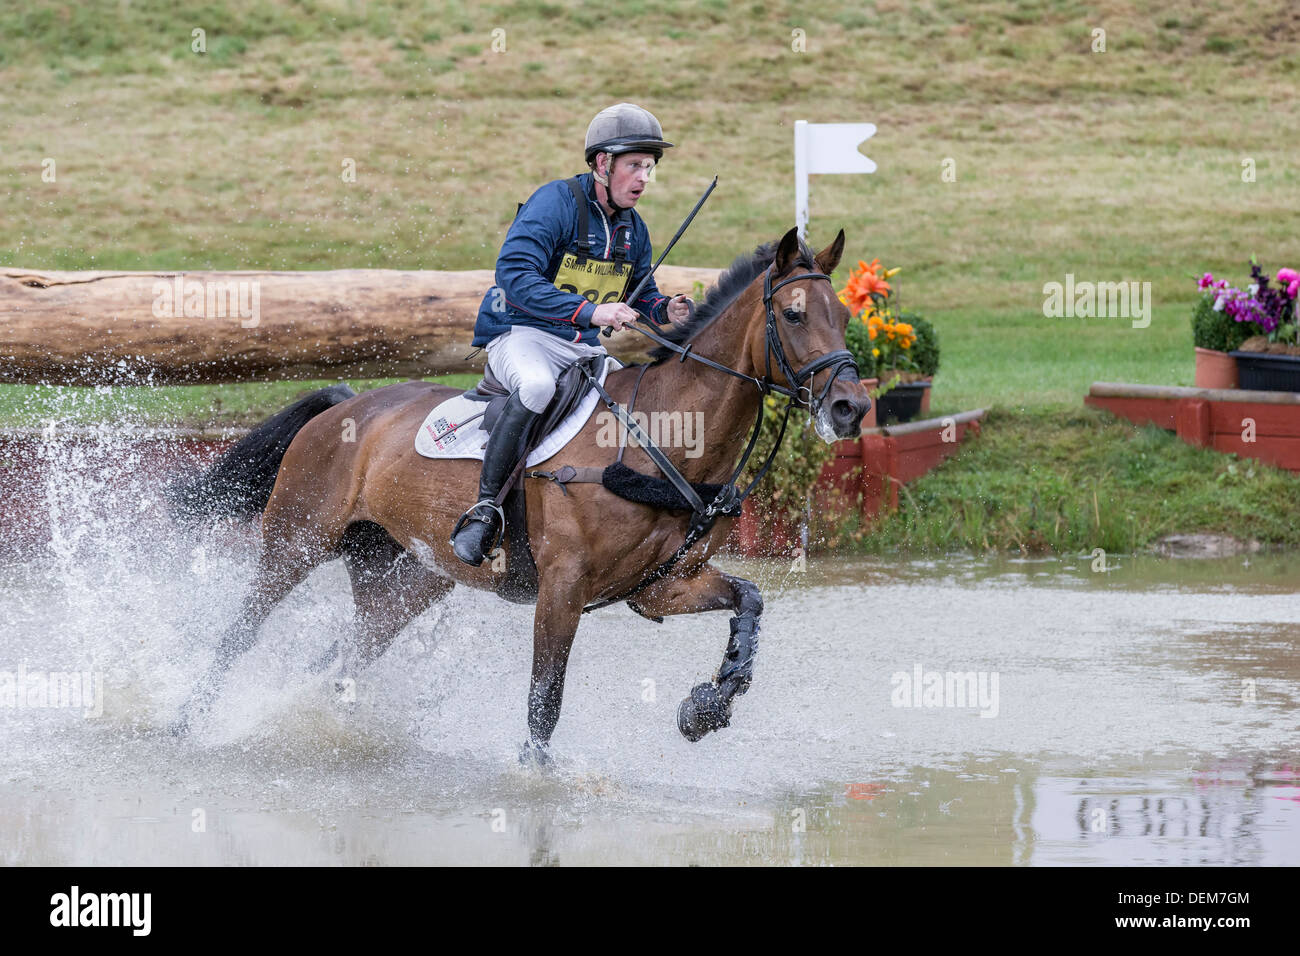 Angus Smales on The Pilgrims promise at FBE 2013, Gatcombe Park - Stock Image